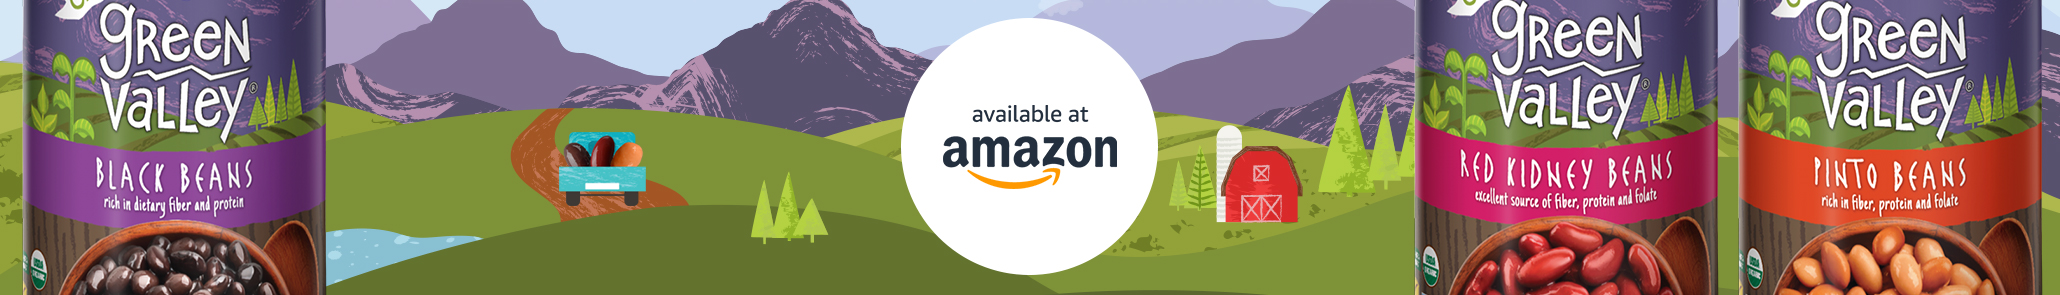 Save Time and Energy with Amazon Delivery